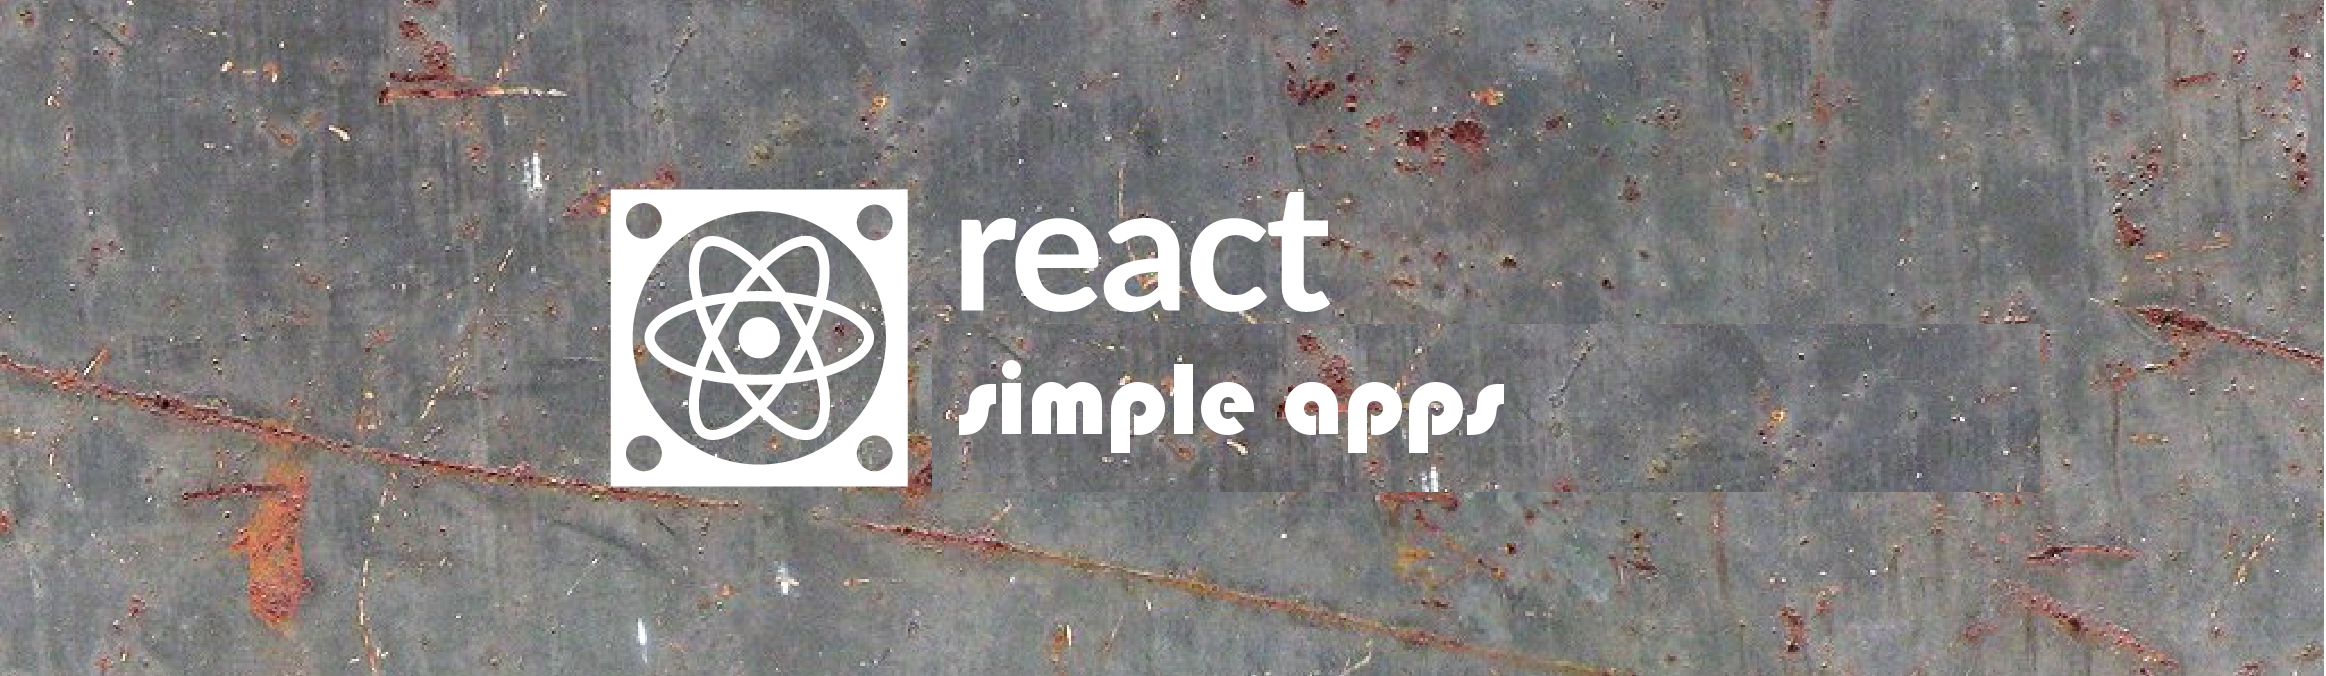 react simple apps